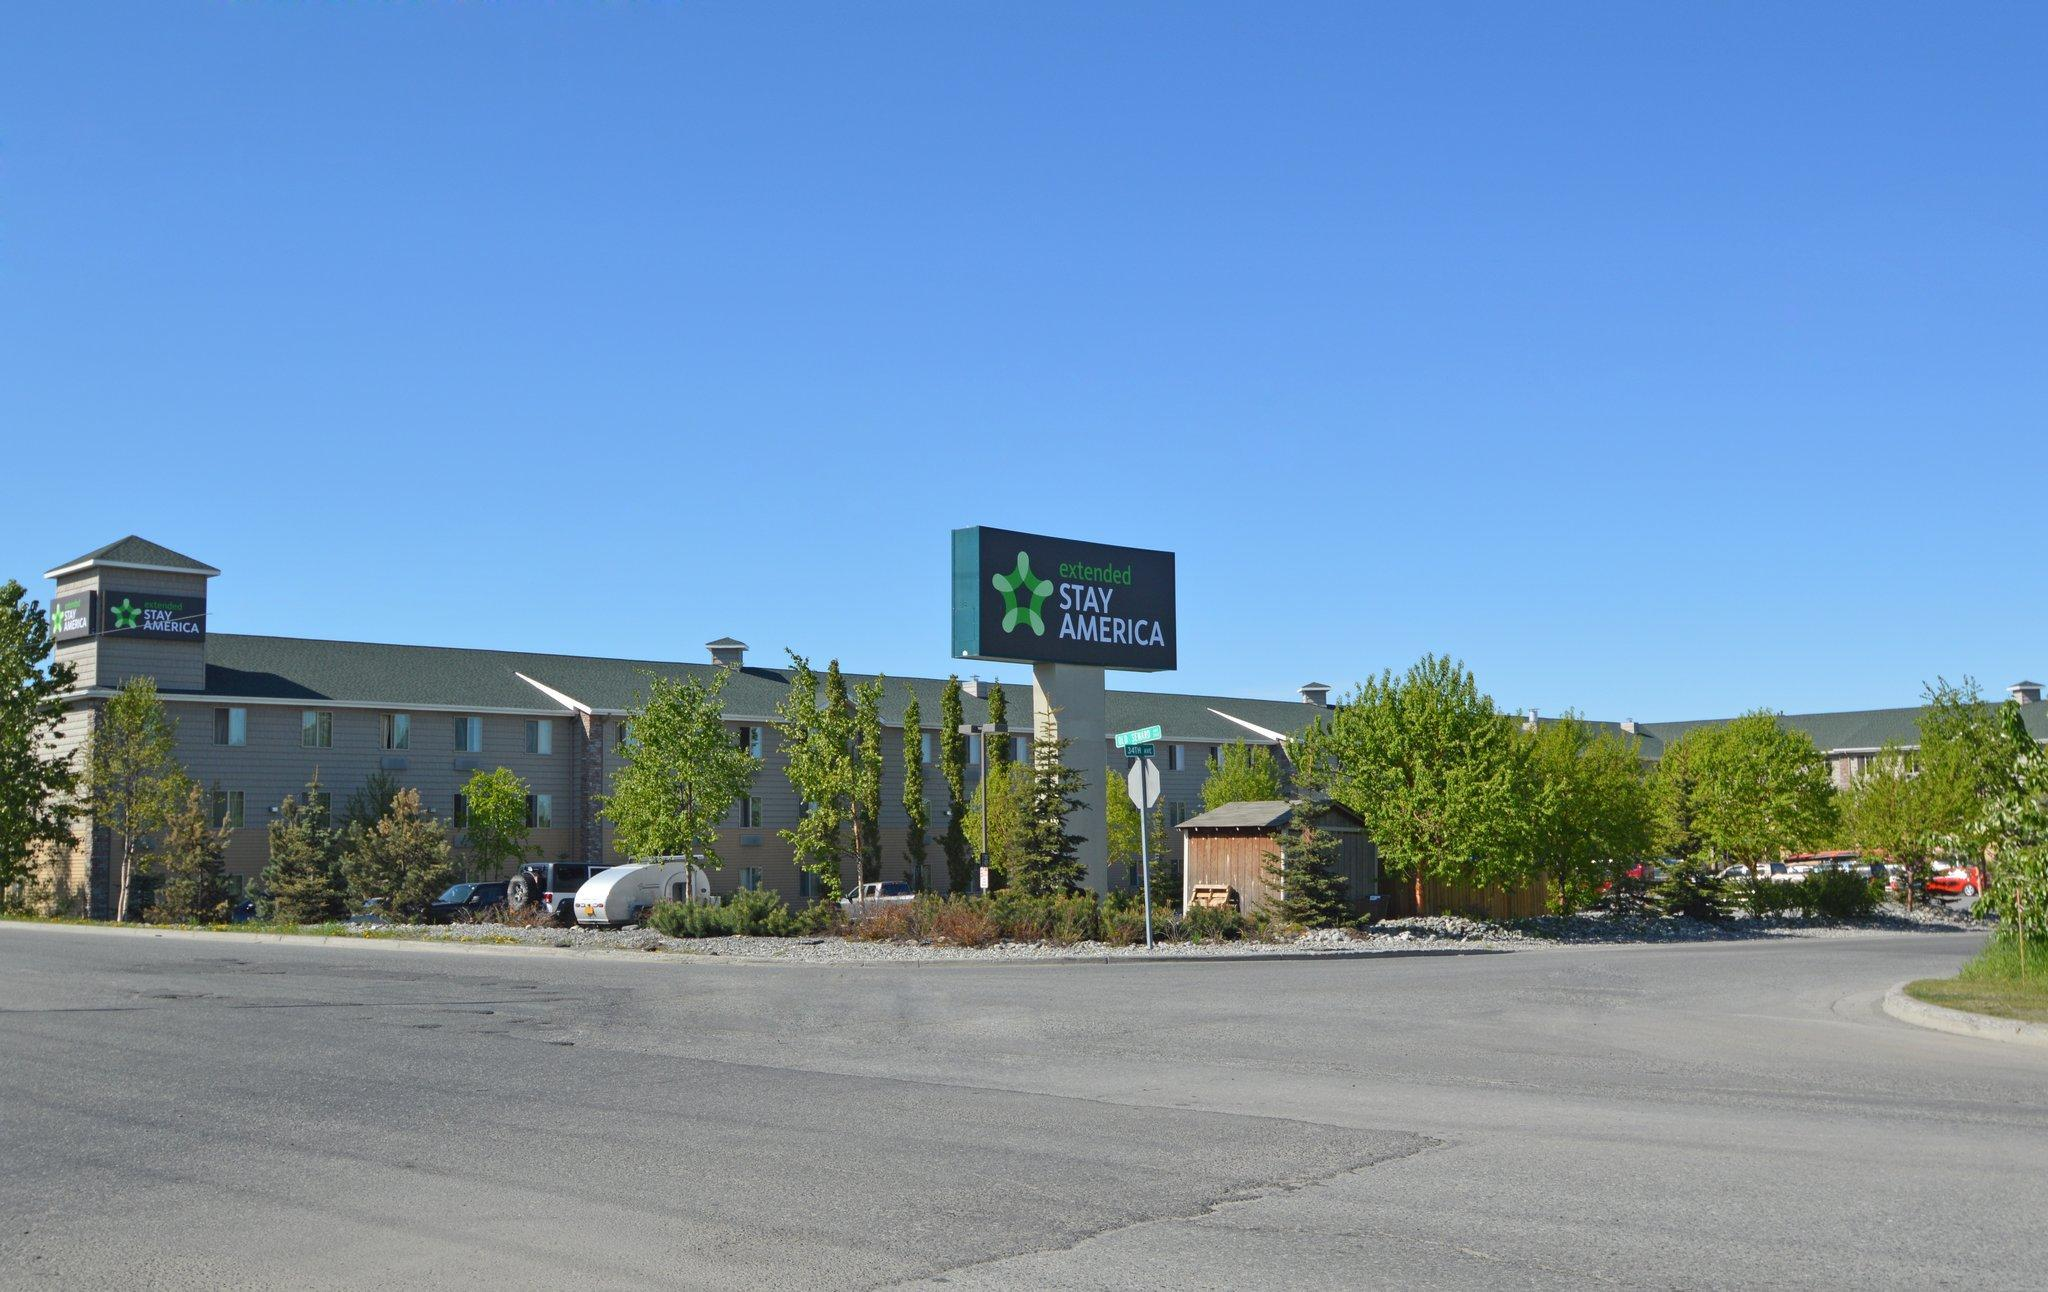 Extended Stay America Anchorage Midtown